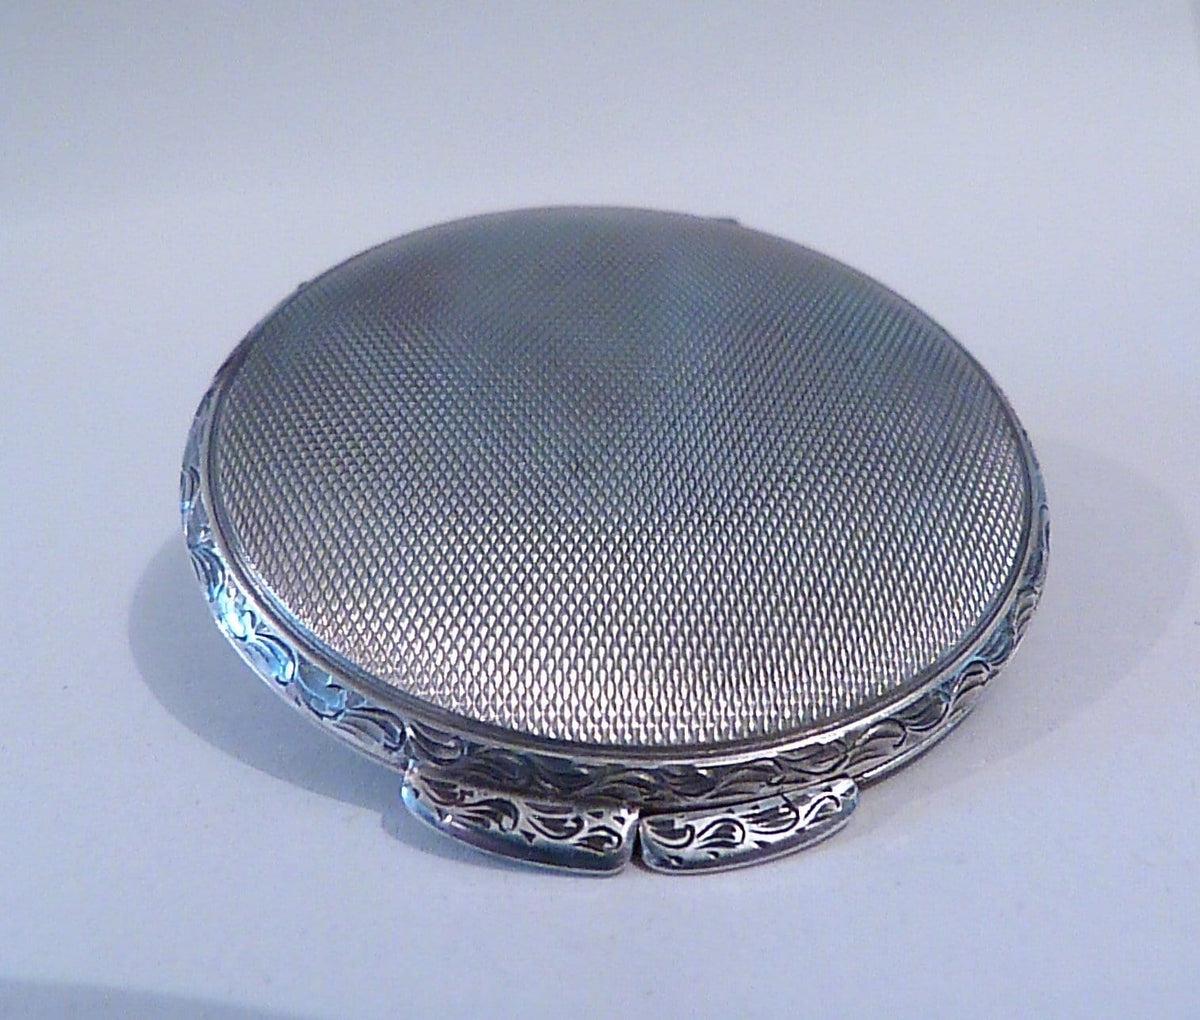 Antique silver gifts for her solid silver compact mirrors for sale powder mirror compacts 1930s vanities rare - The Vintage Compact Shop